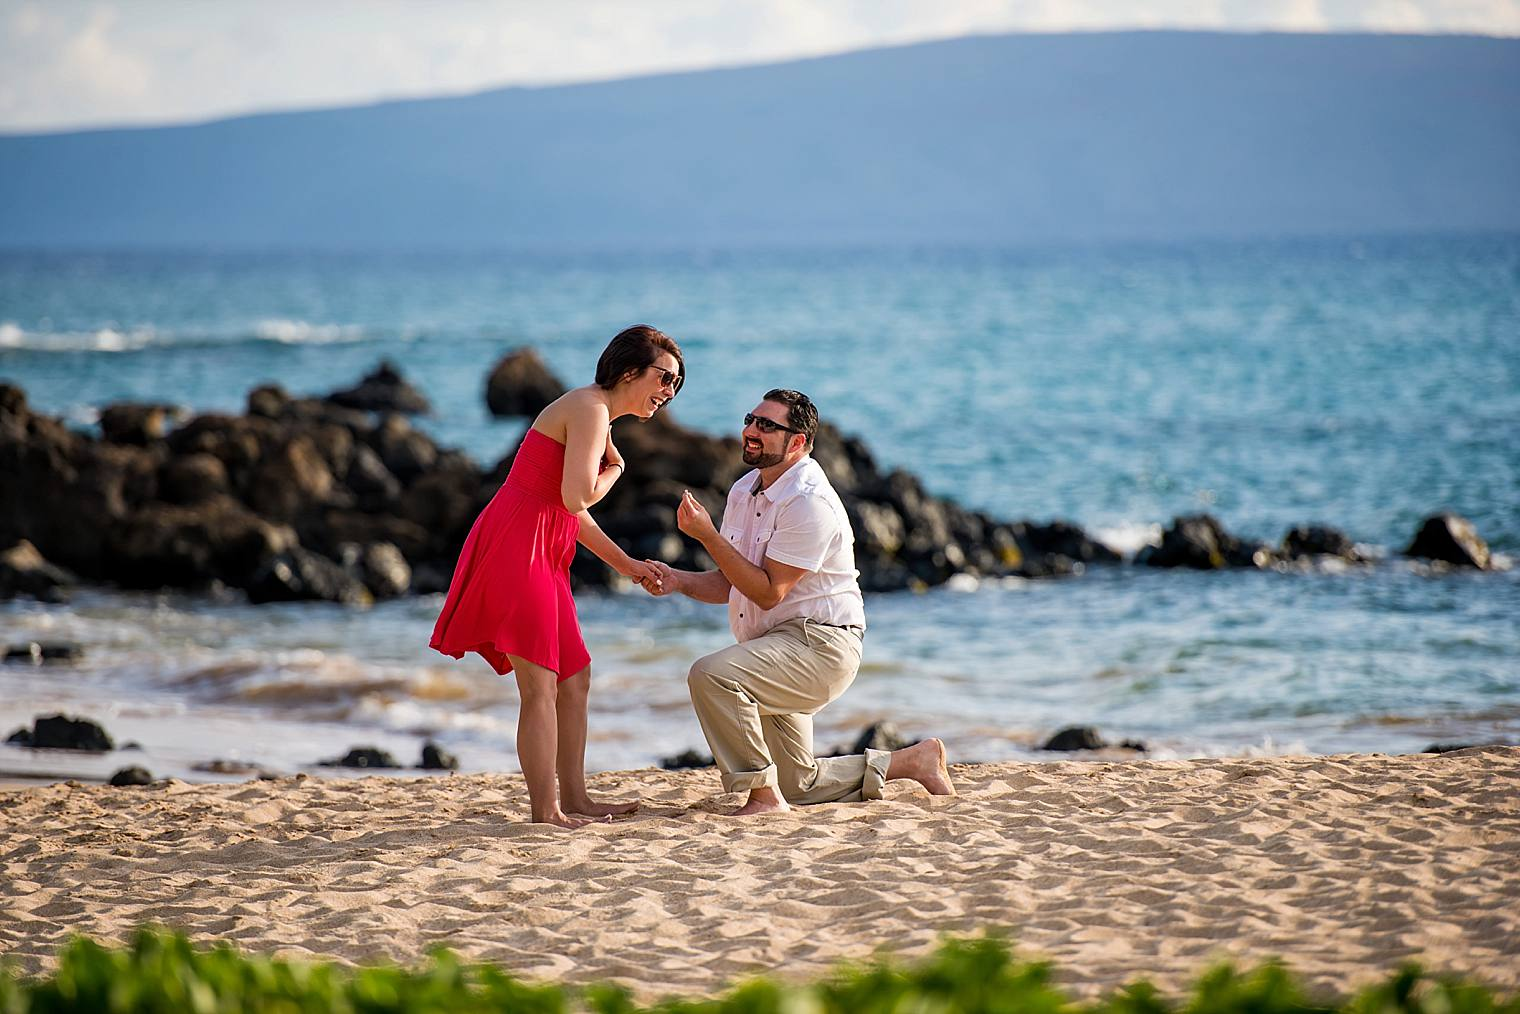 Mike + Michelle | Romantic Scavenger Hunt Proposal in Maui